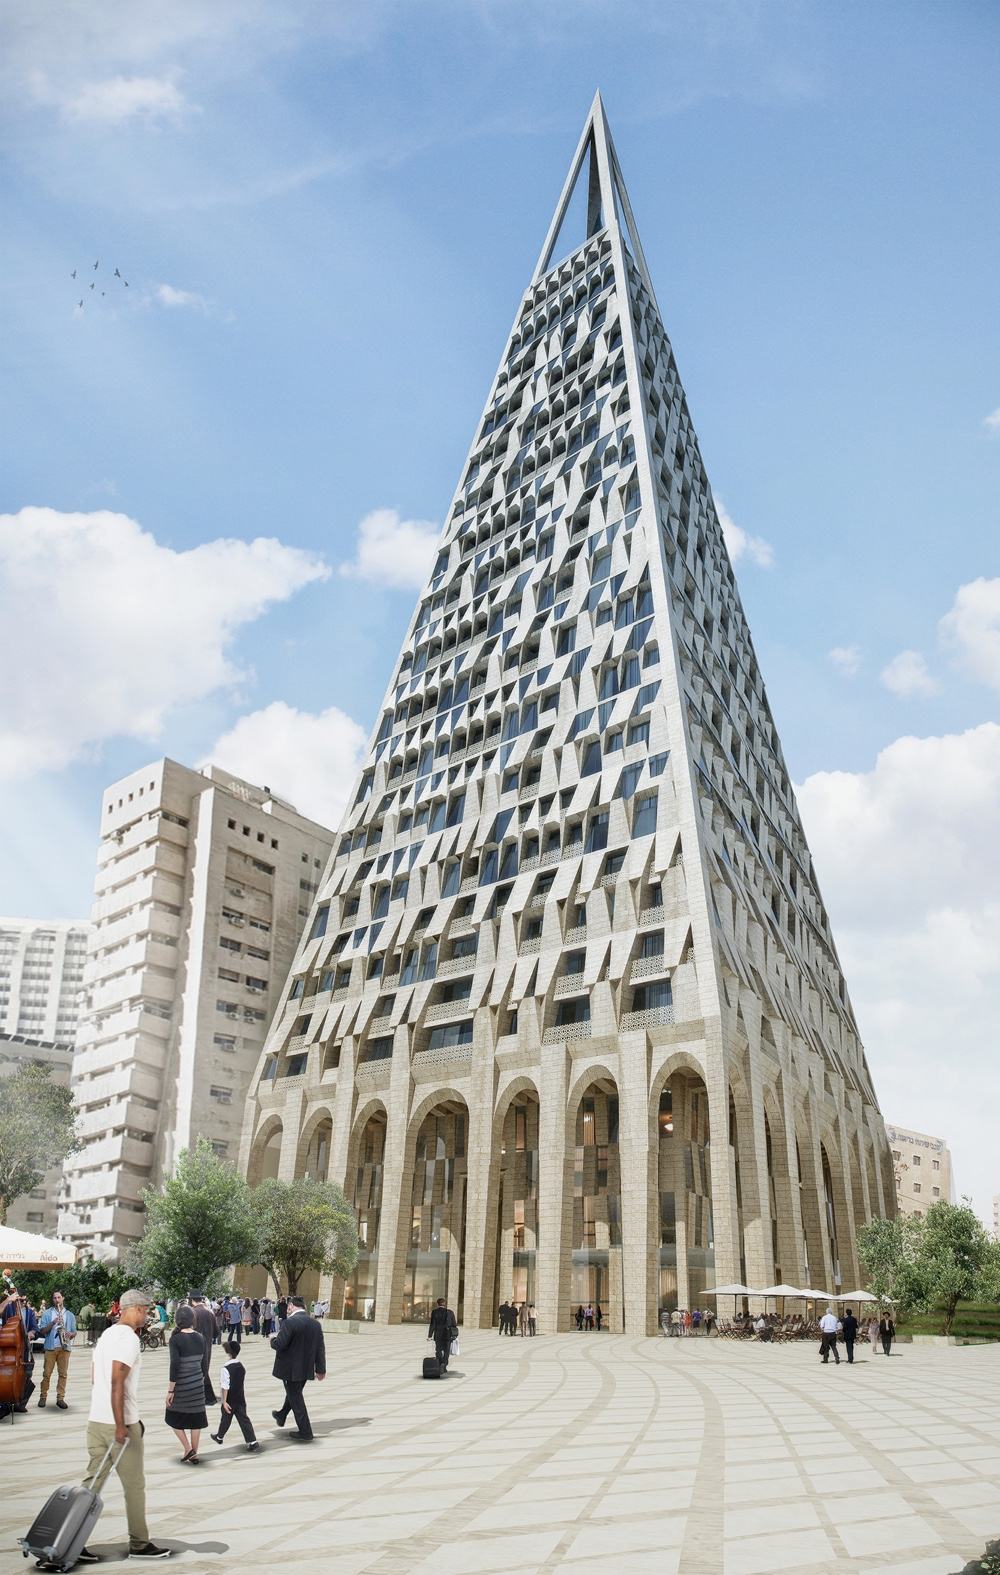 The Pyramid rendering